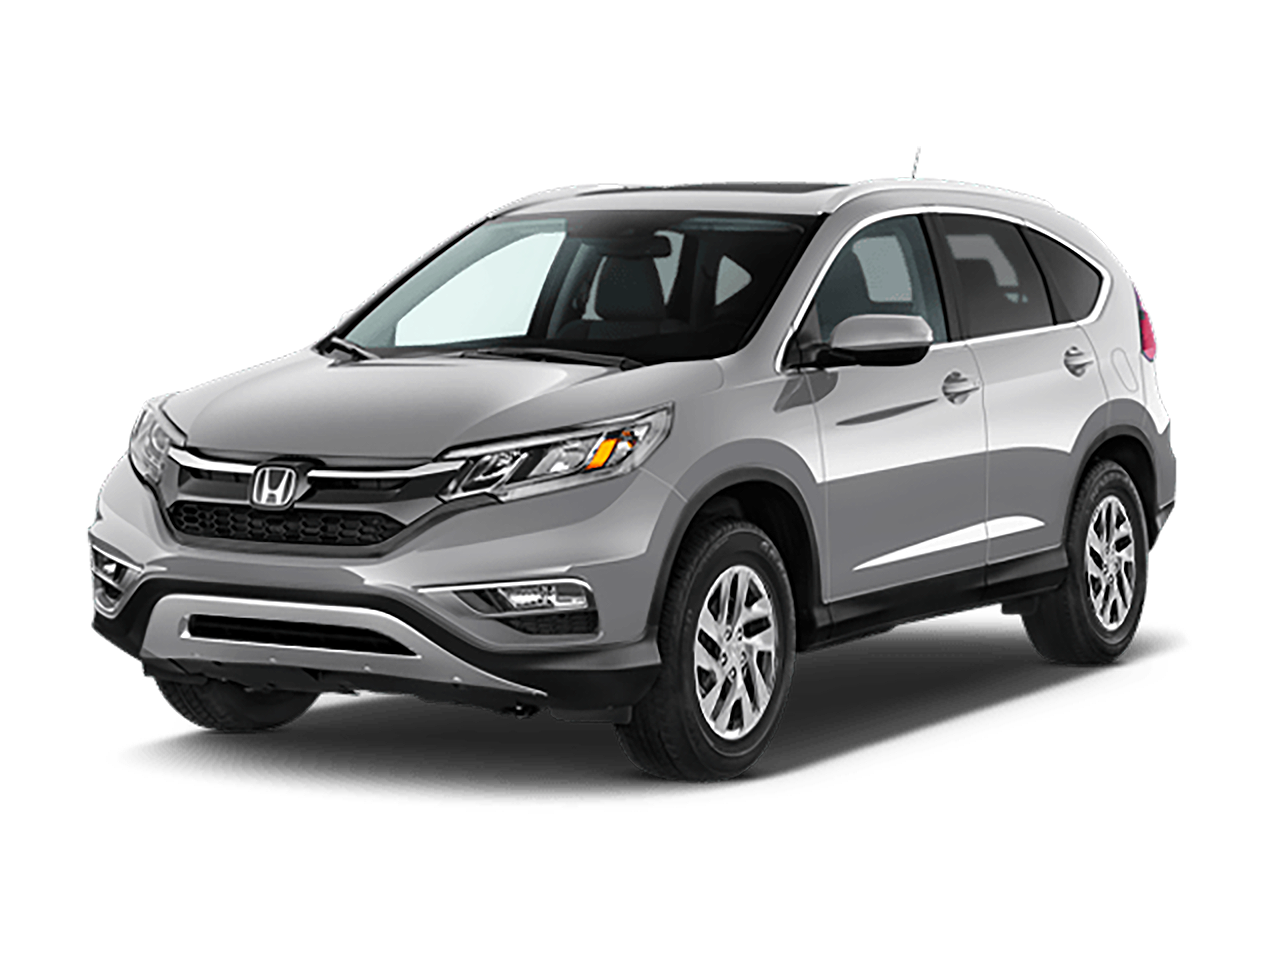 Test Drive A 2016 Honda CR-V at Galpin Honda in Los Angeles